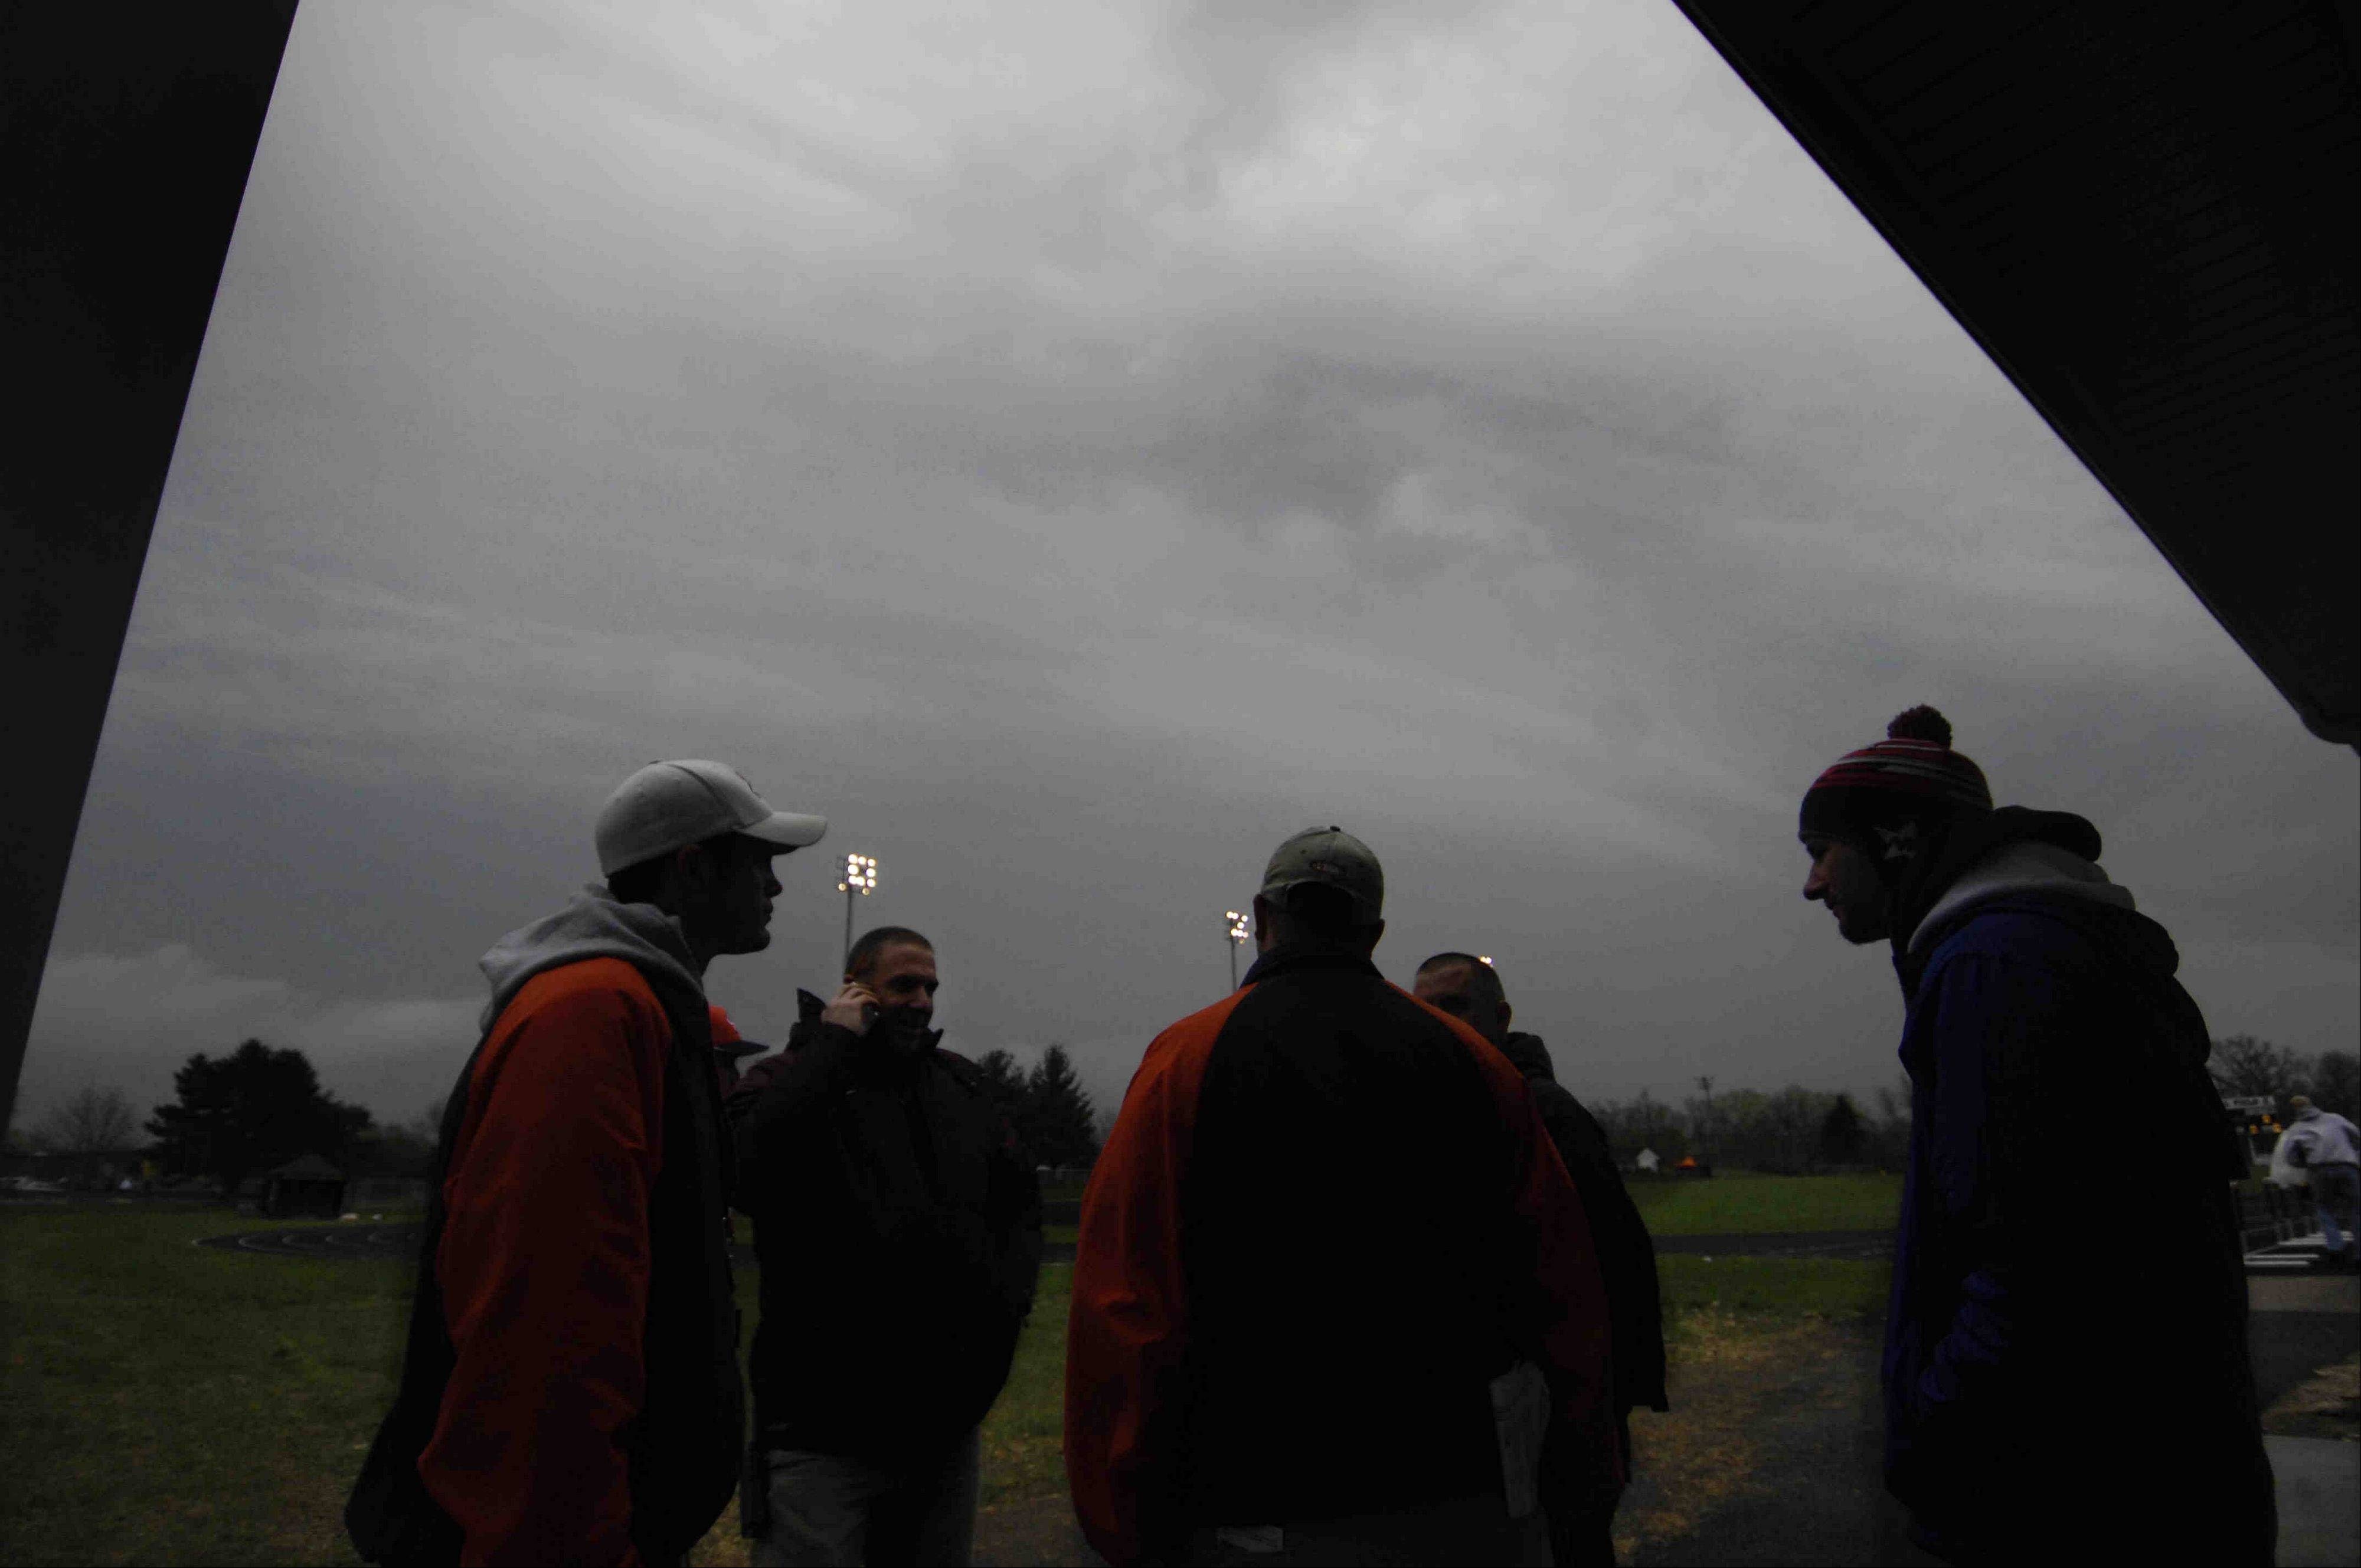 Elgin Athletic Director Paul Pennington, second from left, talks on the phone under ominous clouds as coaches gather to make a decision about trying to continue after more than one weather delay Thursday at the Upstate Eight Conference girls track meet at Memorial Field at Elgin High School.